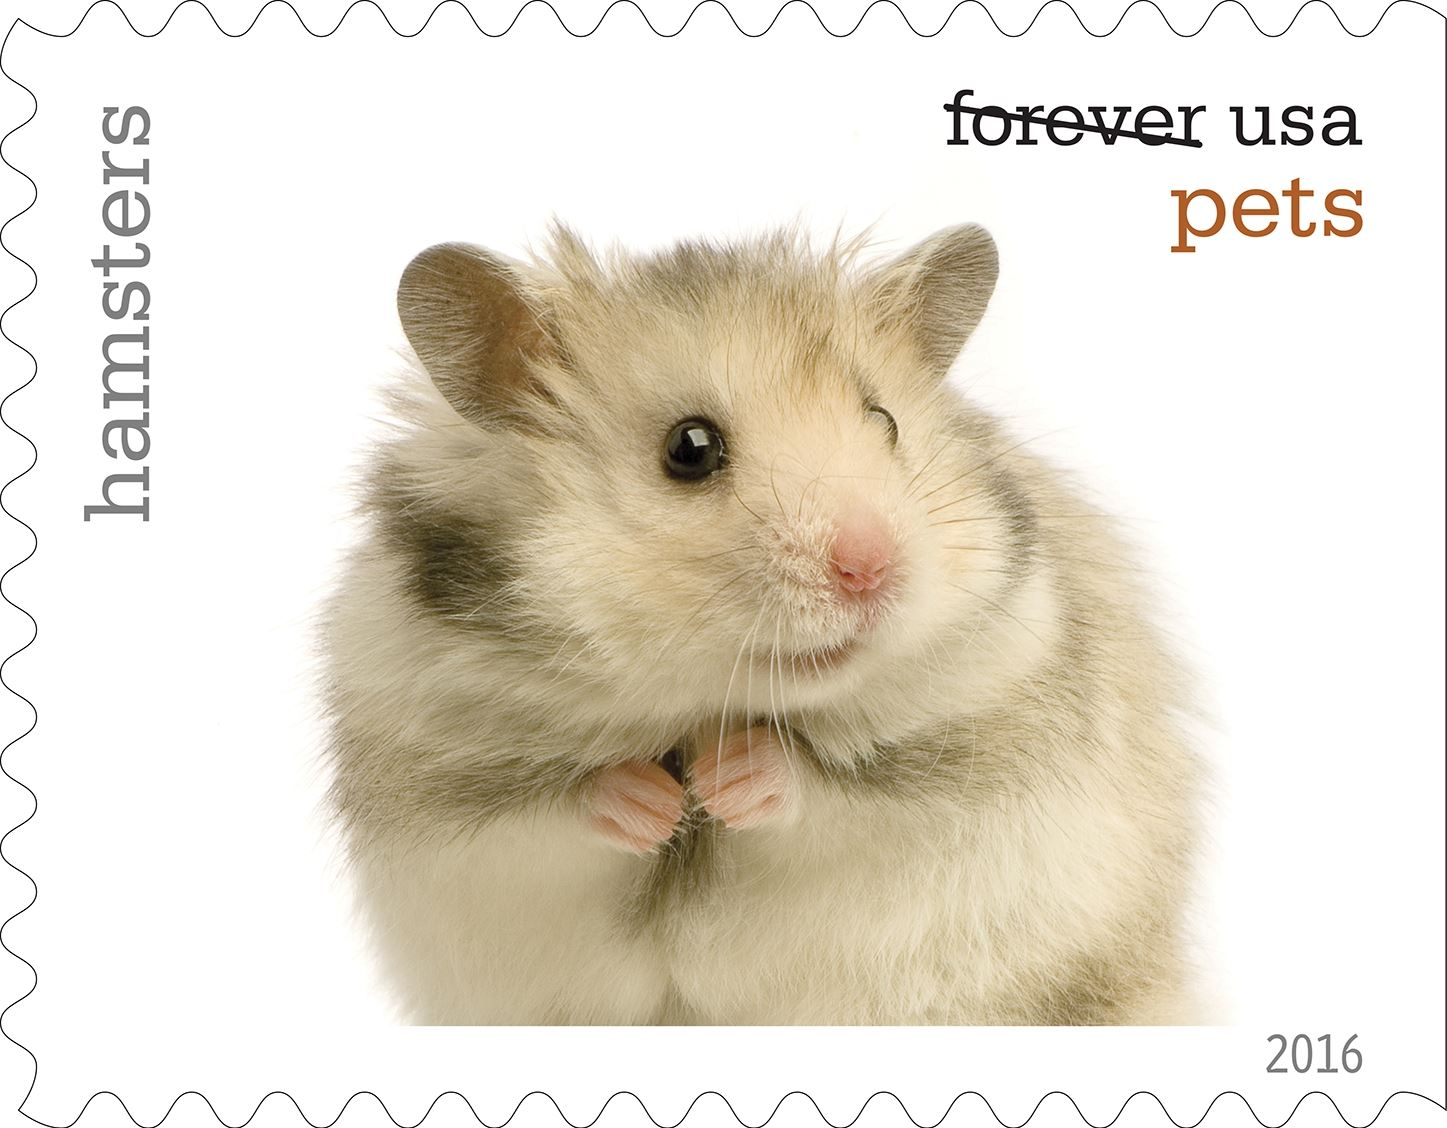 9-0_USPS16STA004j-18 Hamsters will be among the pets celebrated in an upcoming set of Forever stamps issued by the U.S. Postal Service.